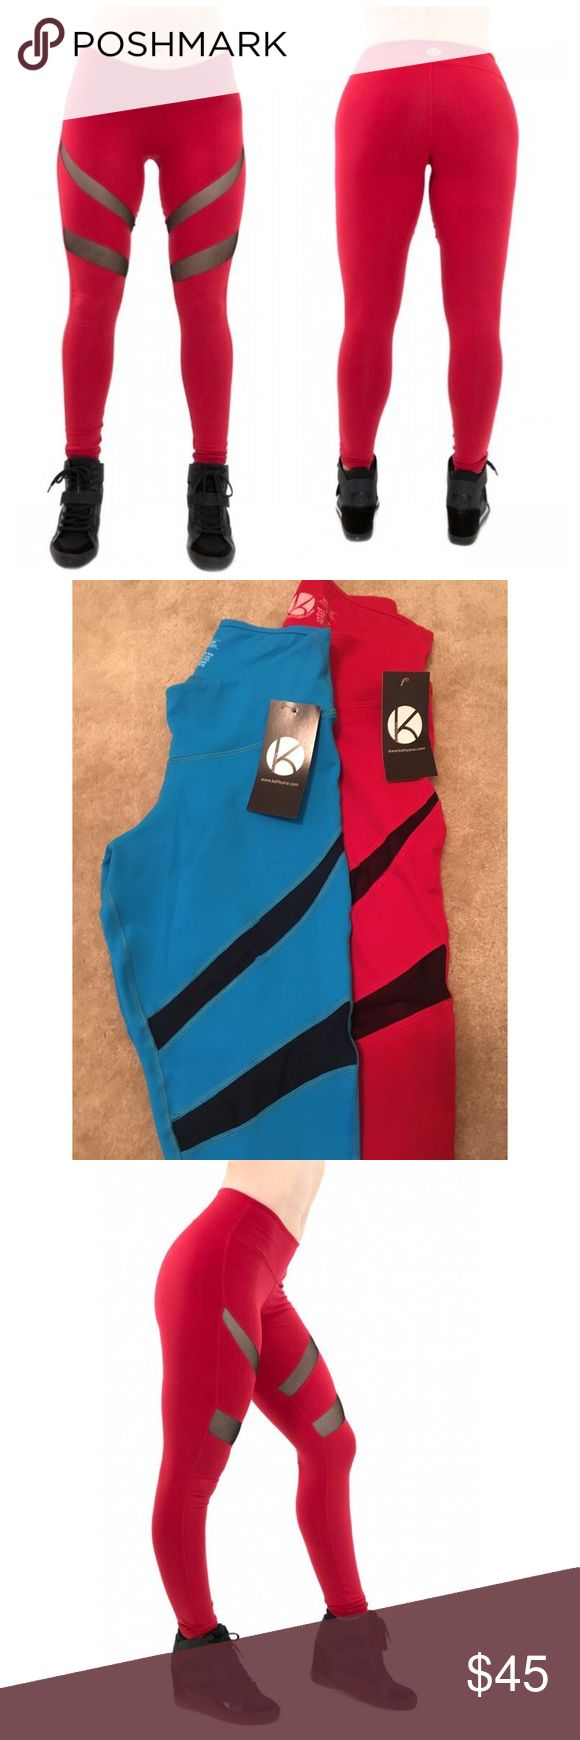 ❤️‼️ Sexy mesh gym leggings Cute yoga pants with mesh cut outs on the front.  Available in red and blue ❤️❤️ Pants Leggings